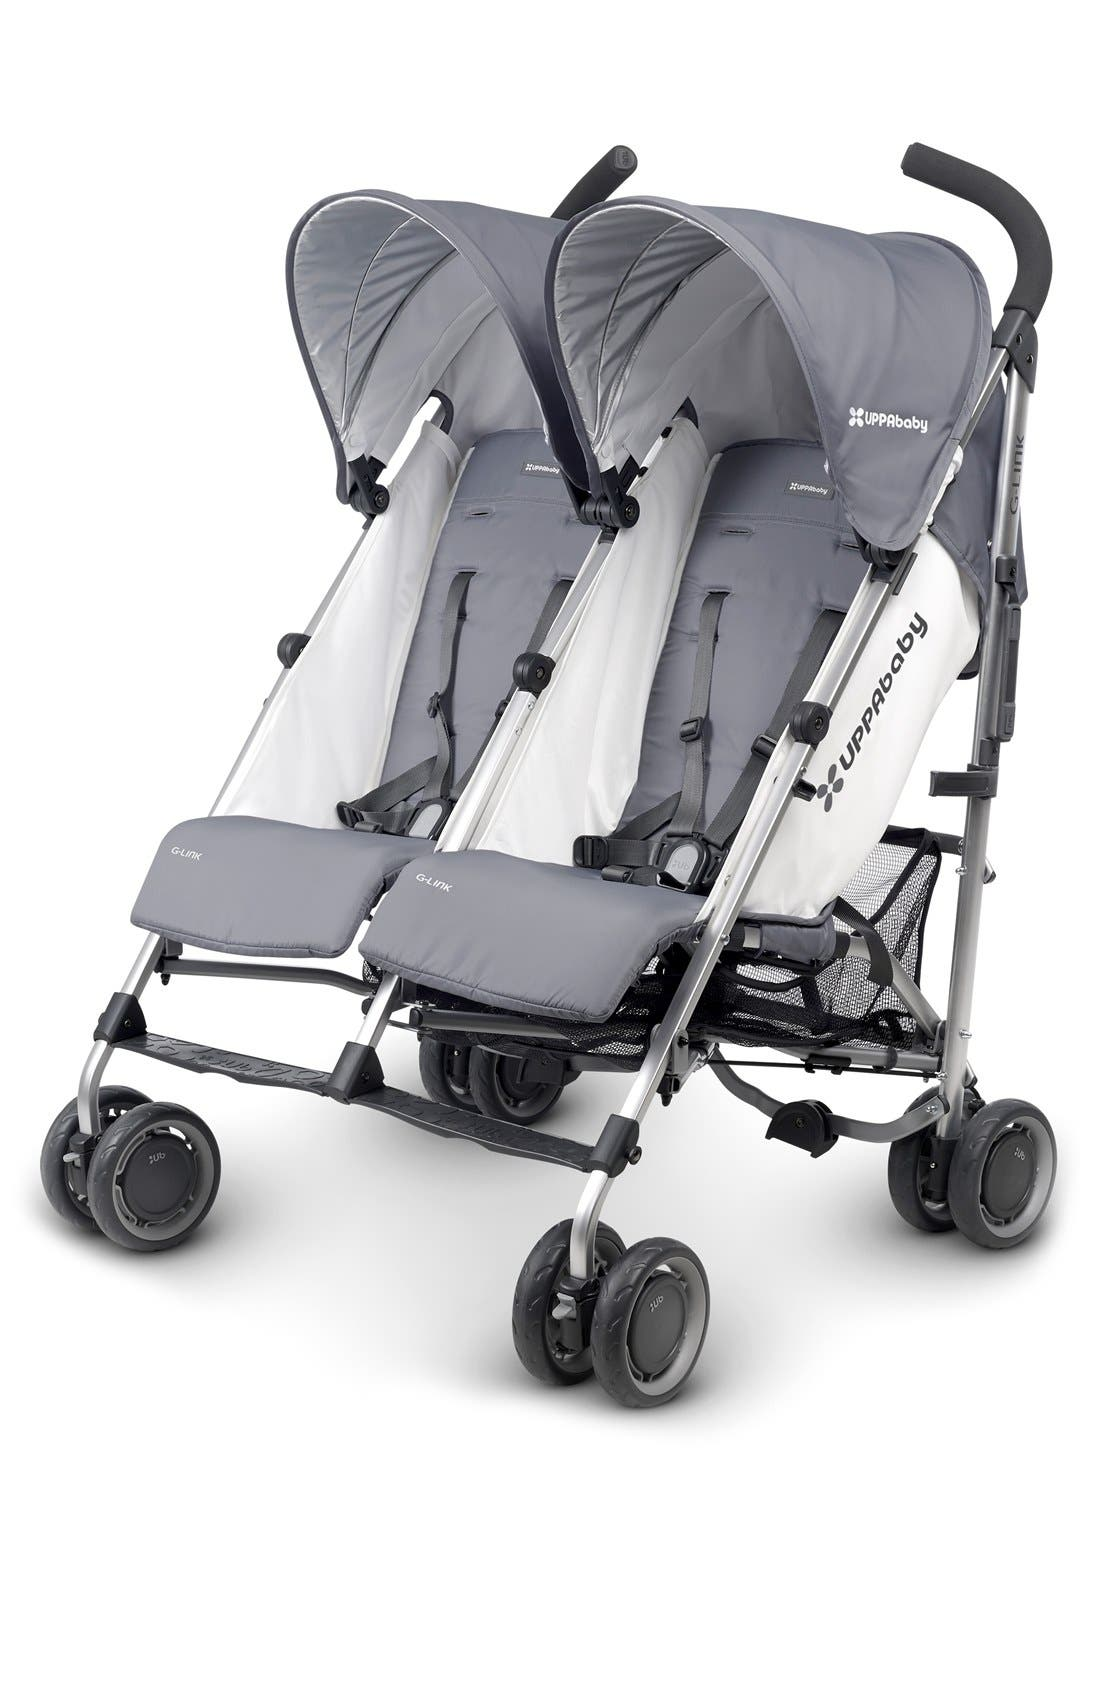 G-LINK Pascal Aluminum Frame Reclining Side by Side Umbrella Stroller,                         Main,                         color, Grey